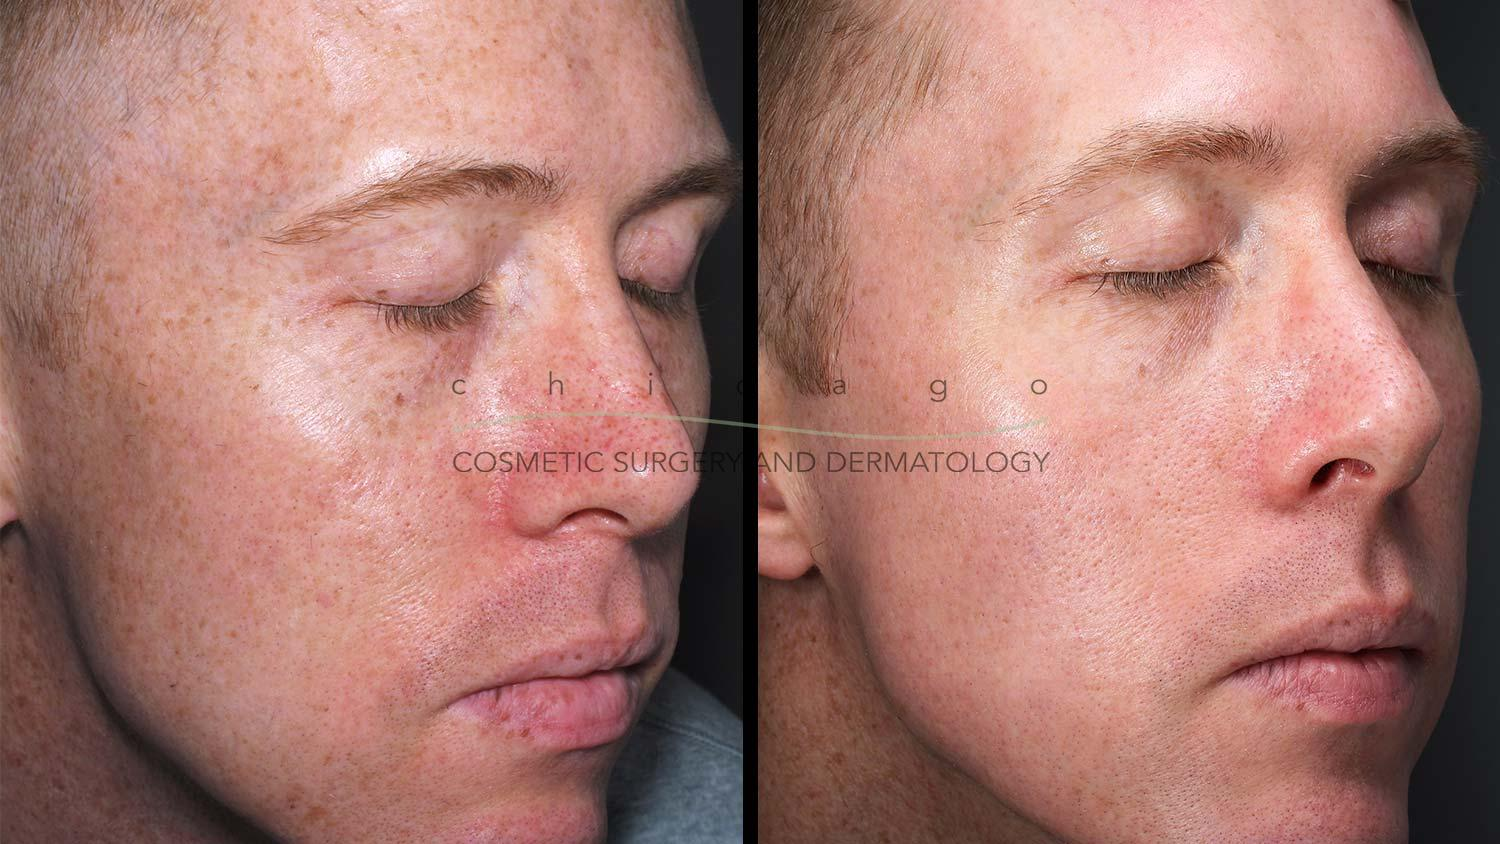 Fraxel Dual laser resurfacing before and after